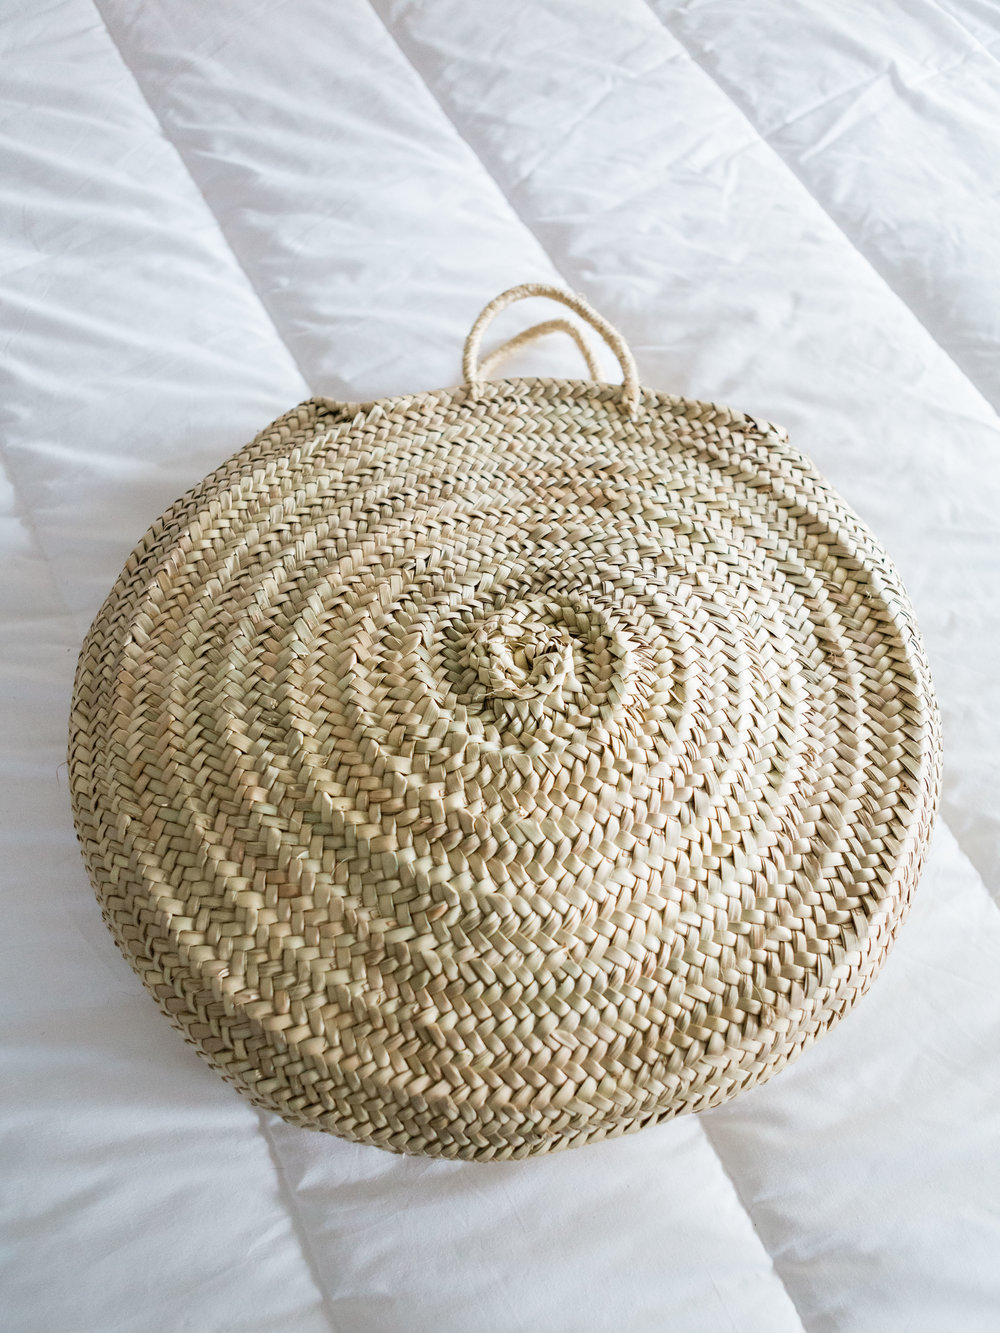 Large round straw tote basket from Foraged Home